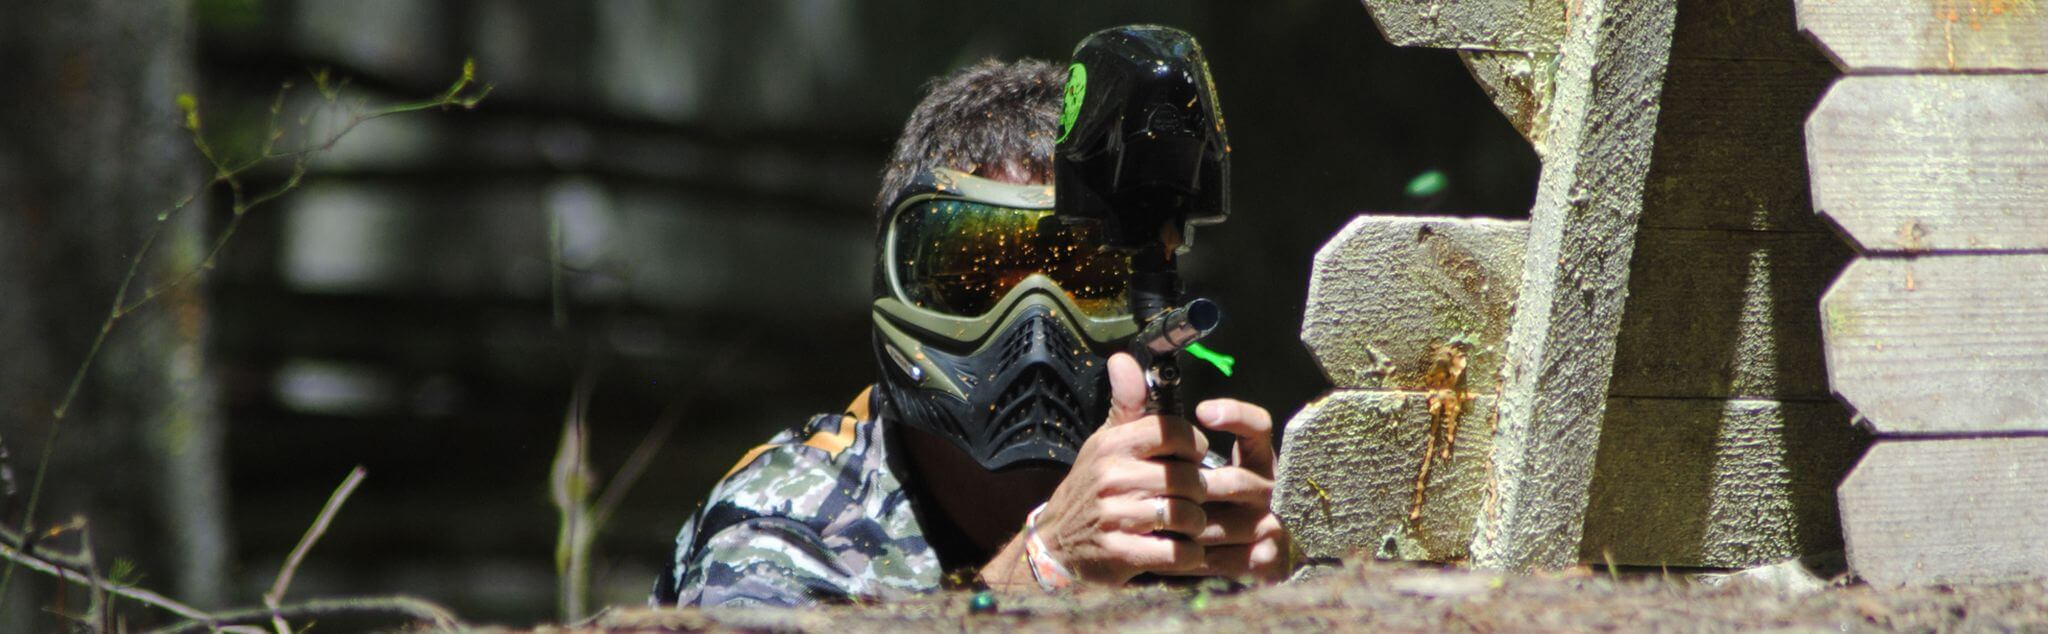 Paintball en Brazatortas